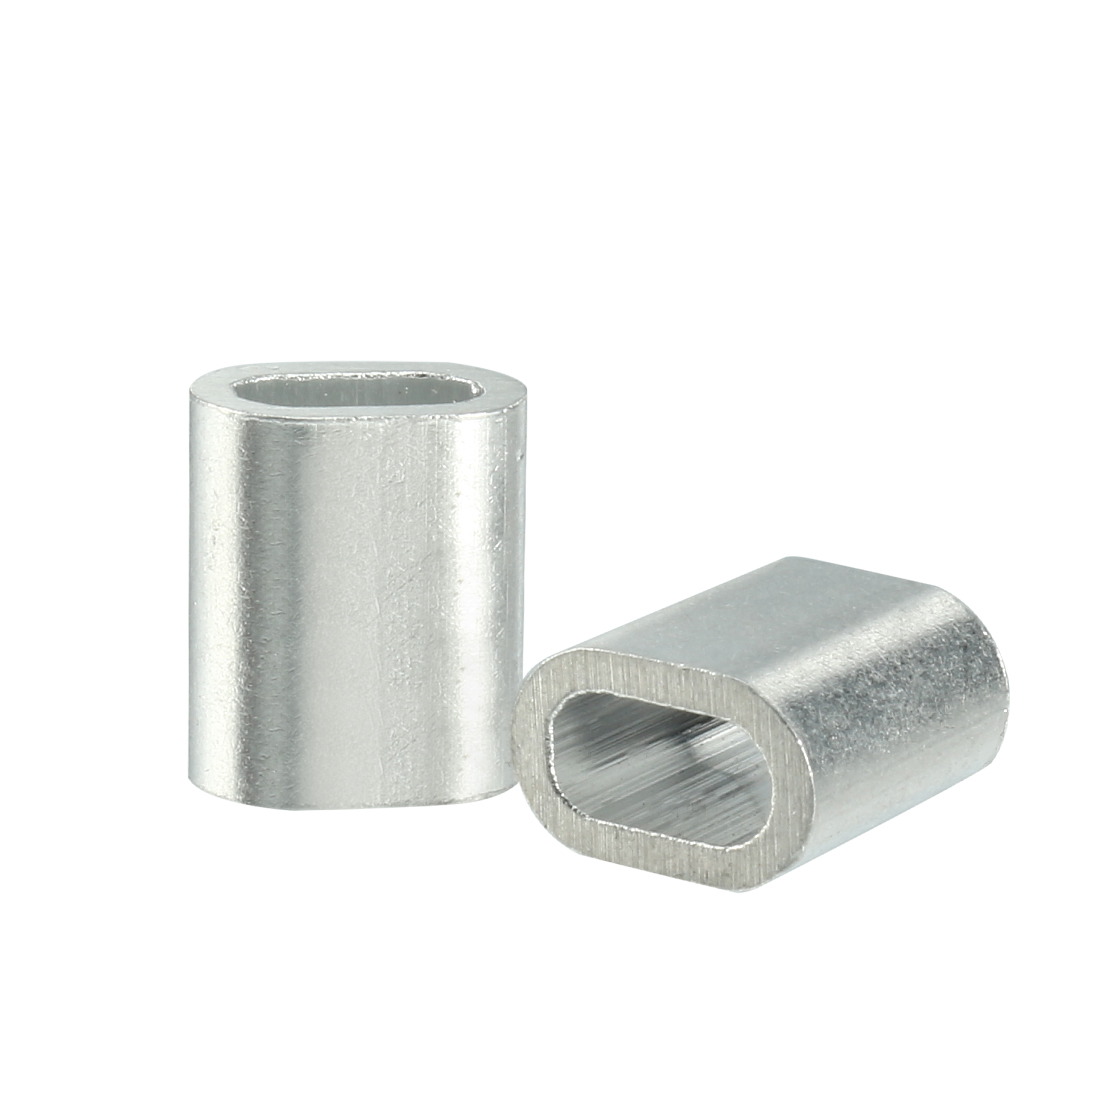 2.5mm Cable Wire Rope Aluminum Sleeves Clip Fittings Crimps Loop 50pcs